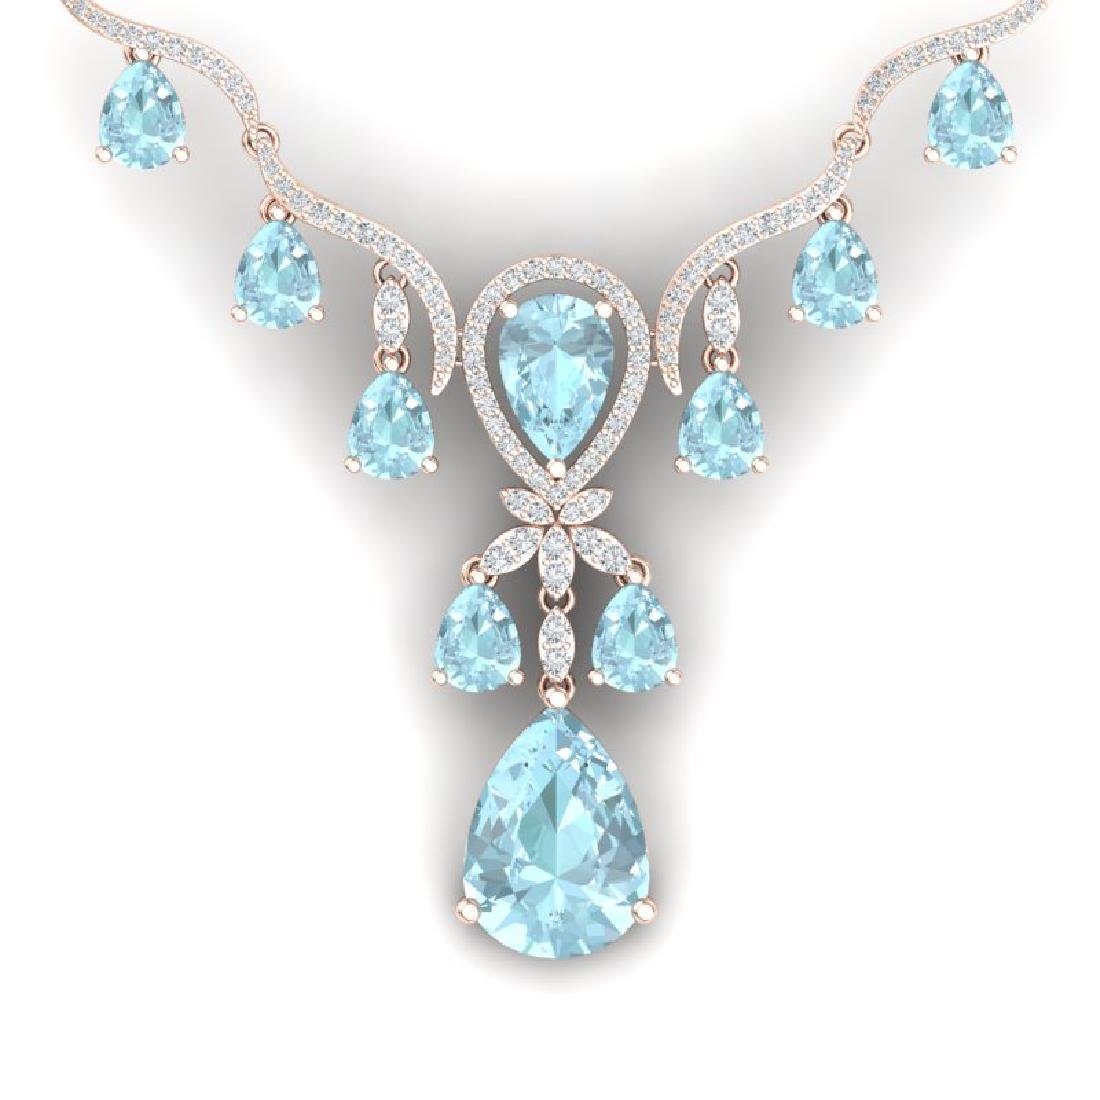 38.14 CTW Royalty Sky Topaz & VS Diamond Necklace 18K